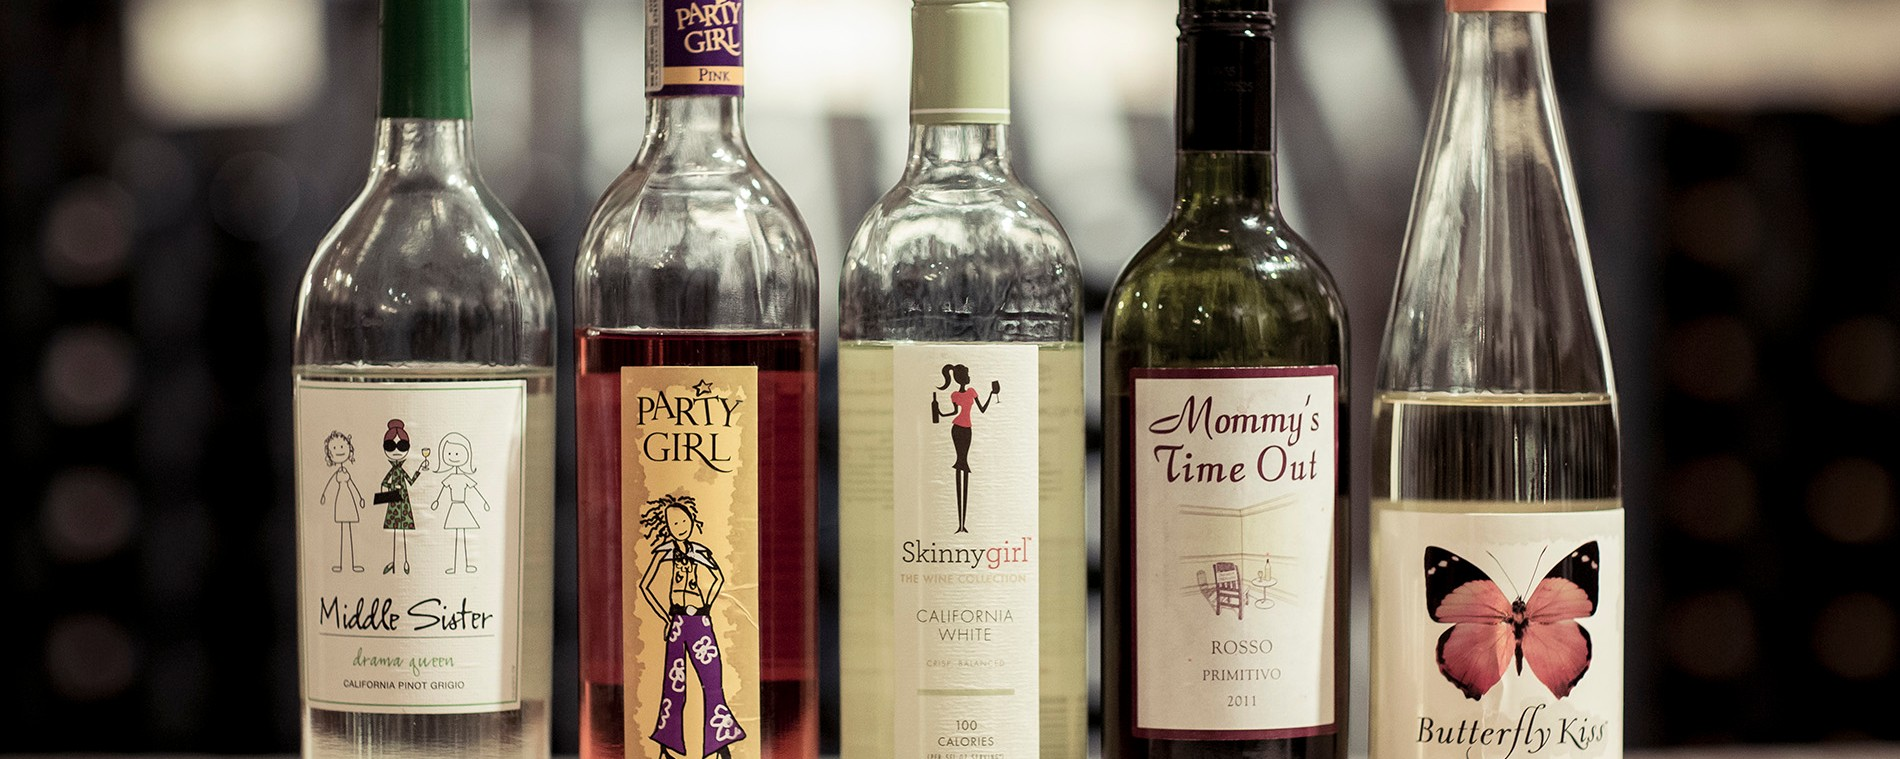 A French Sommelier Drinks The Girliest-Looking Wines We Could Find